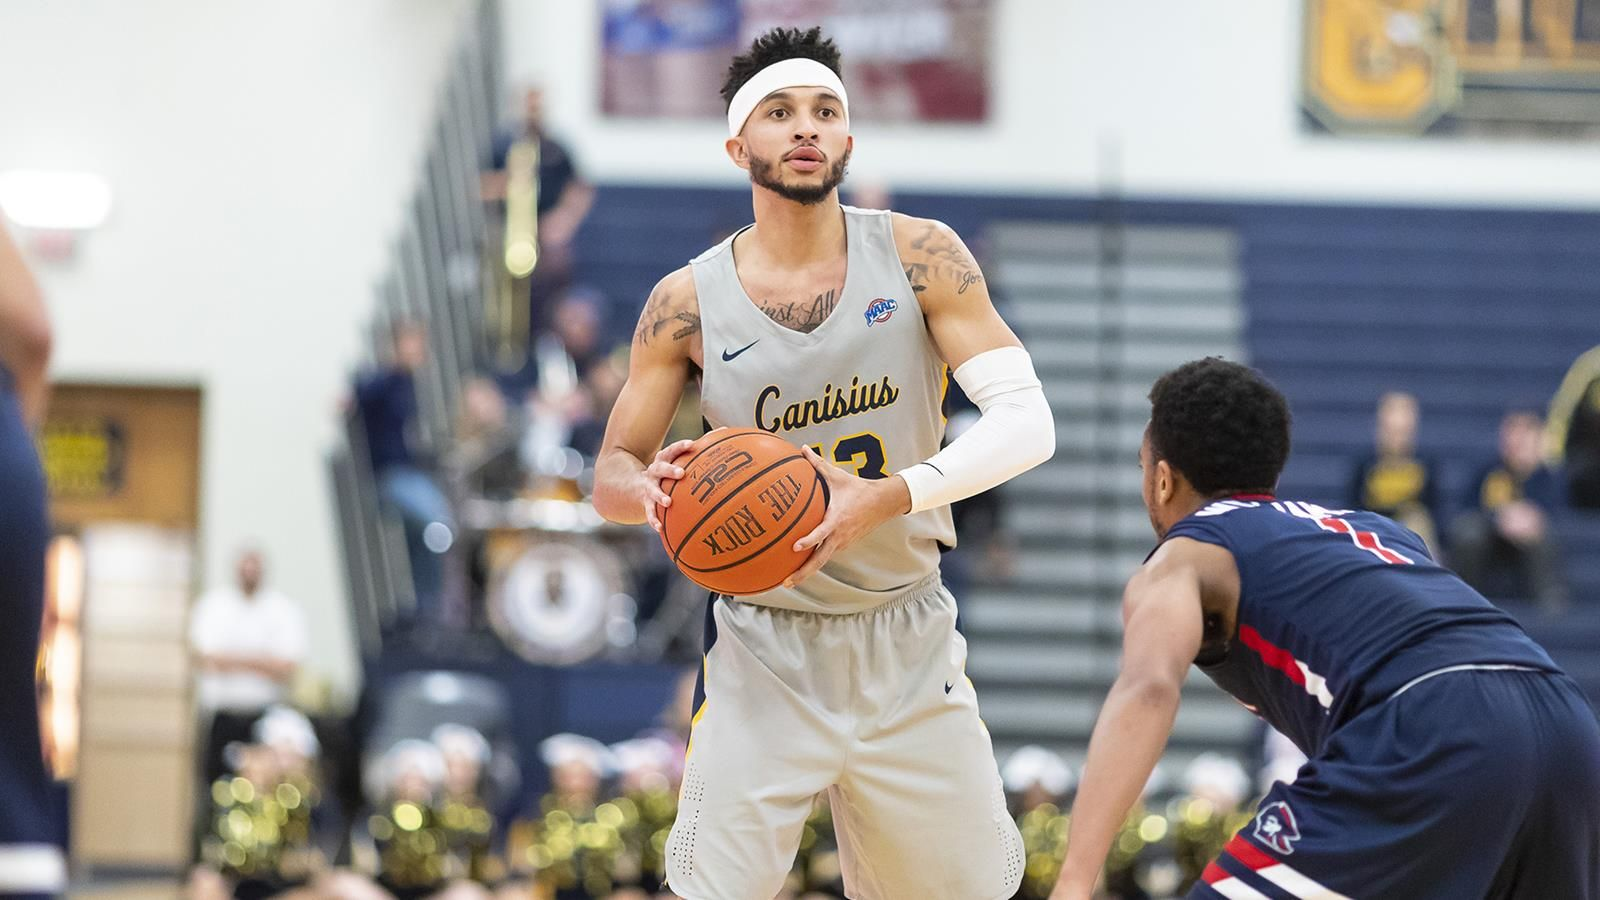 Isaiah Reese to join London Lions for 2021-22 season